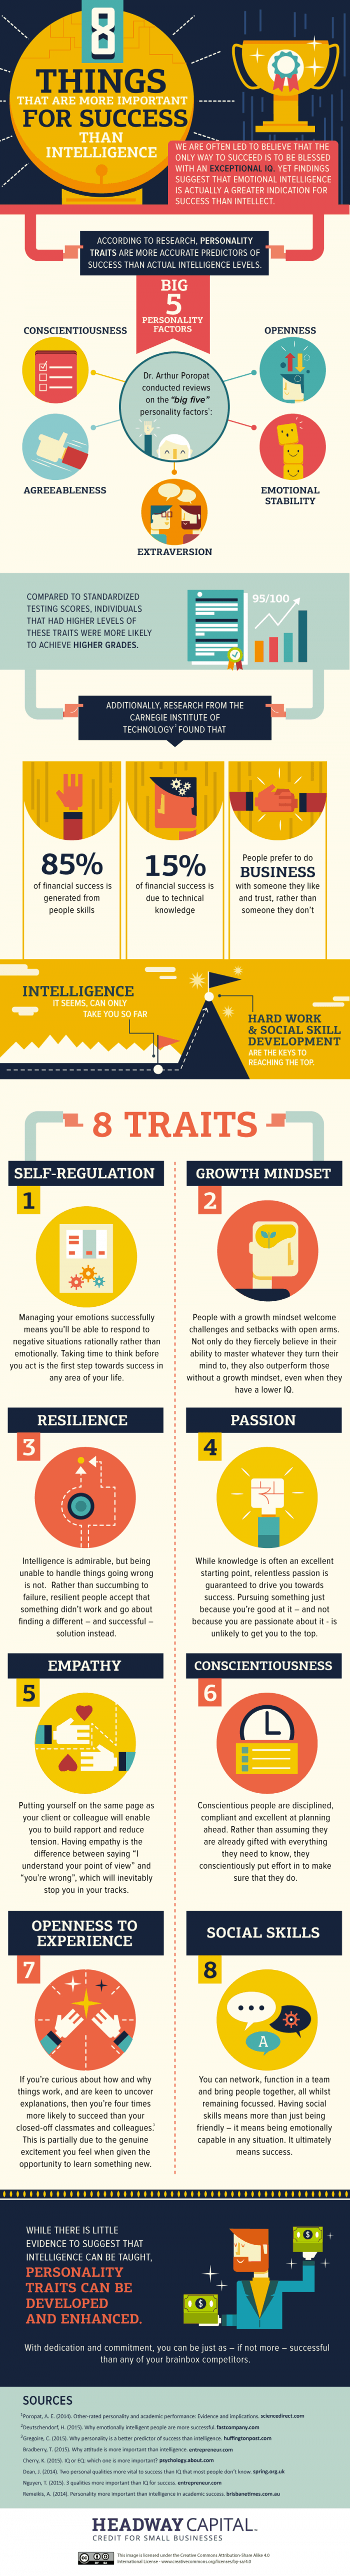 success traits infographic